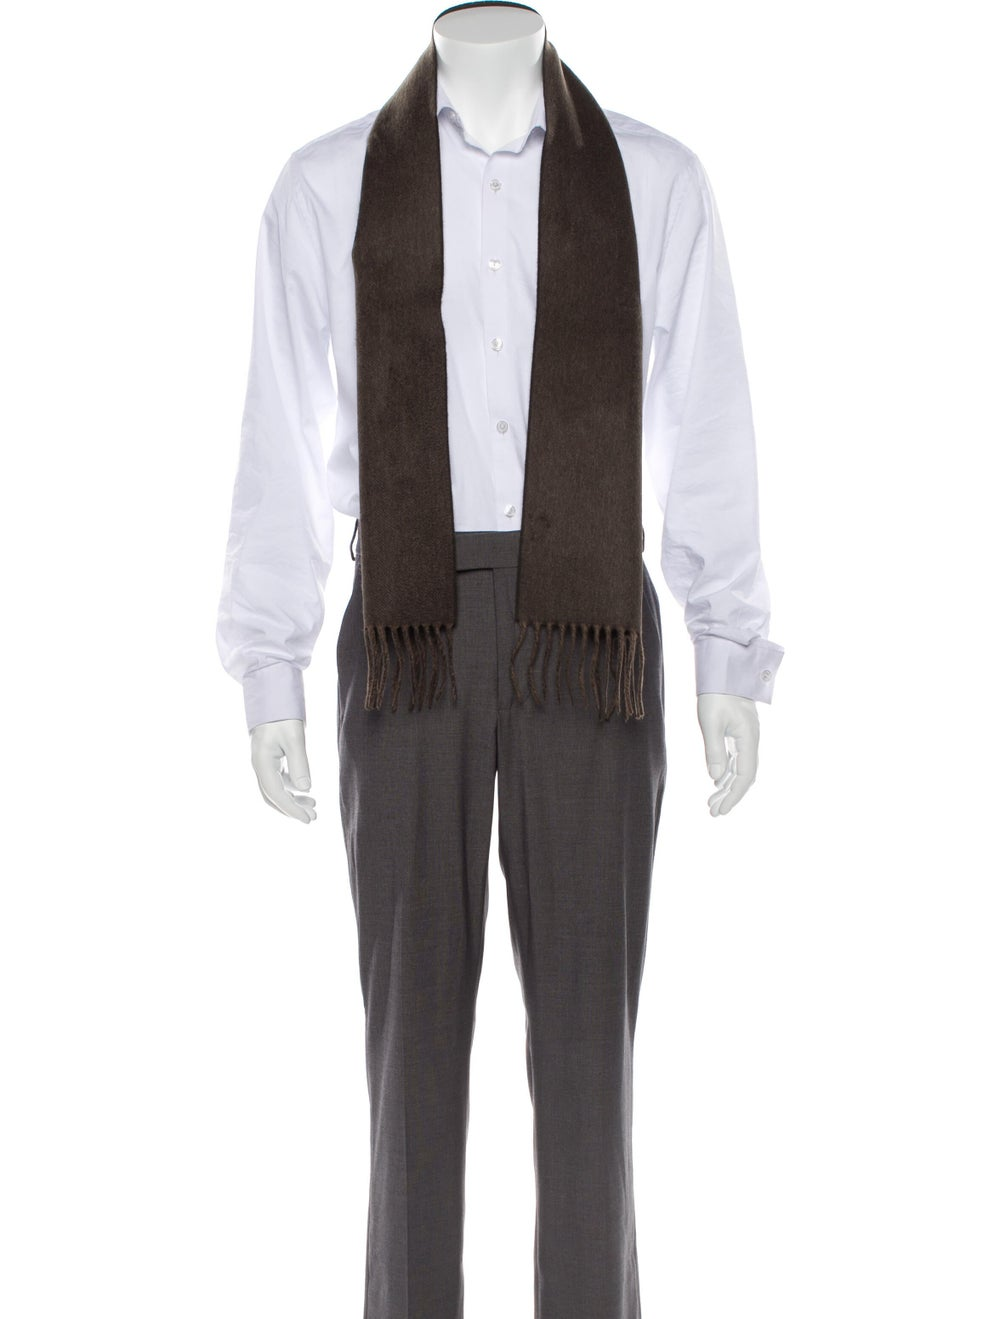 Gucci Fringe-Trimmed Cashmere Scarf w/ Tags brown - image 3